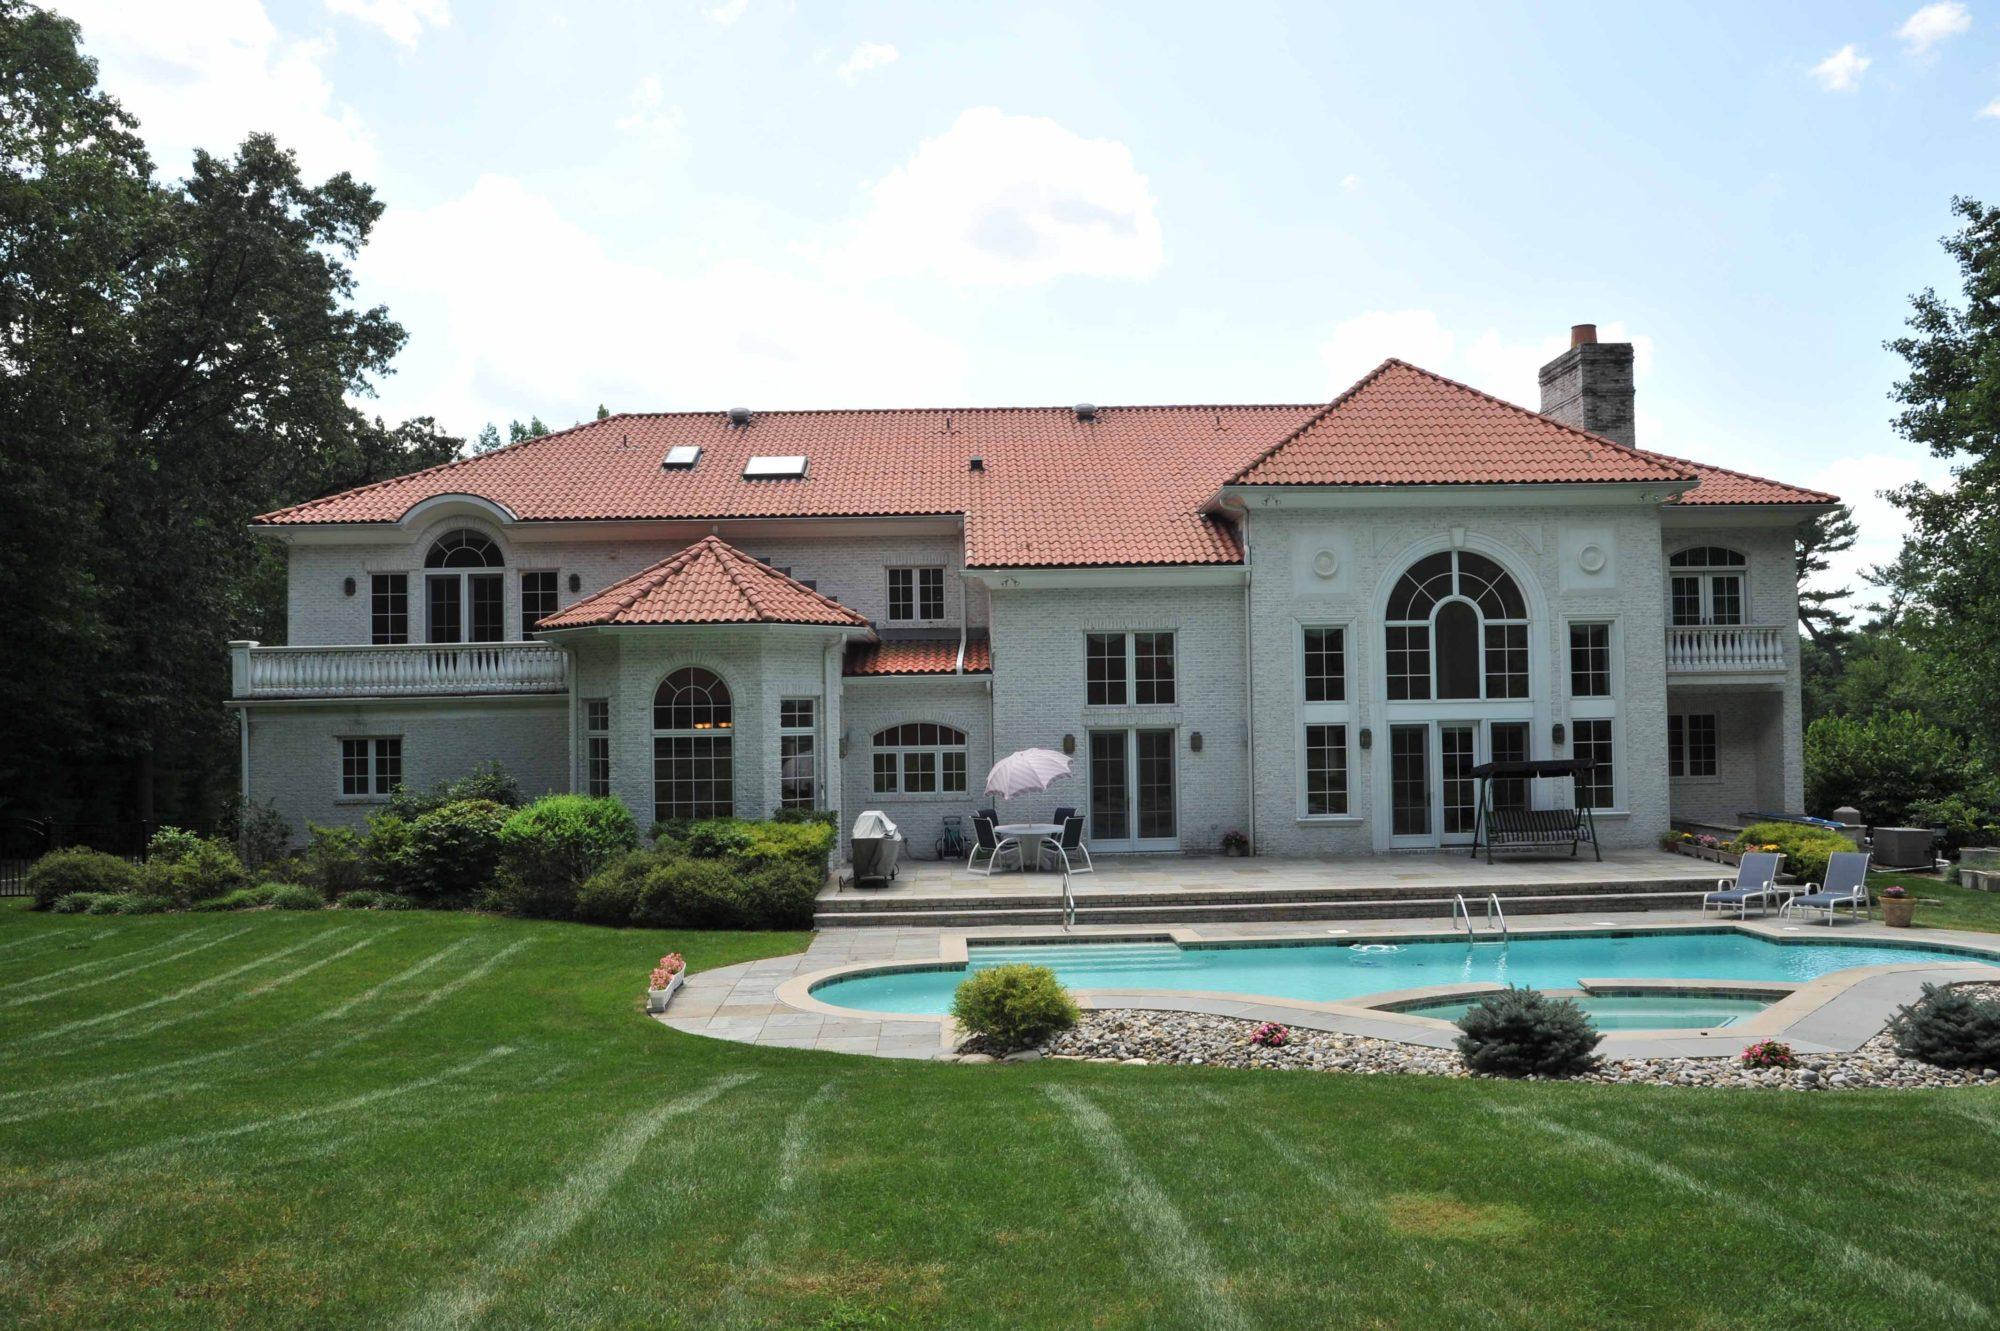 Beautiful mediterranean style villa in new jersey Nice houses in new jersey